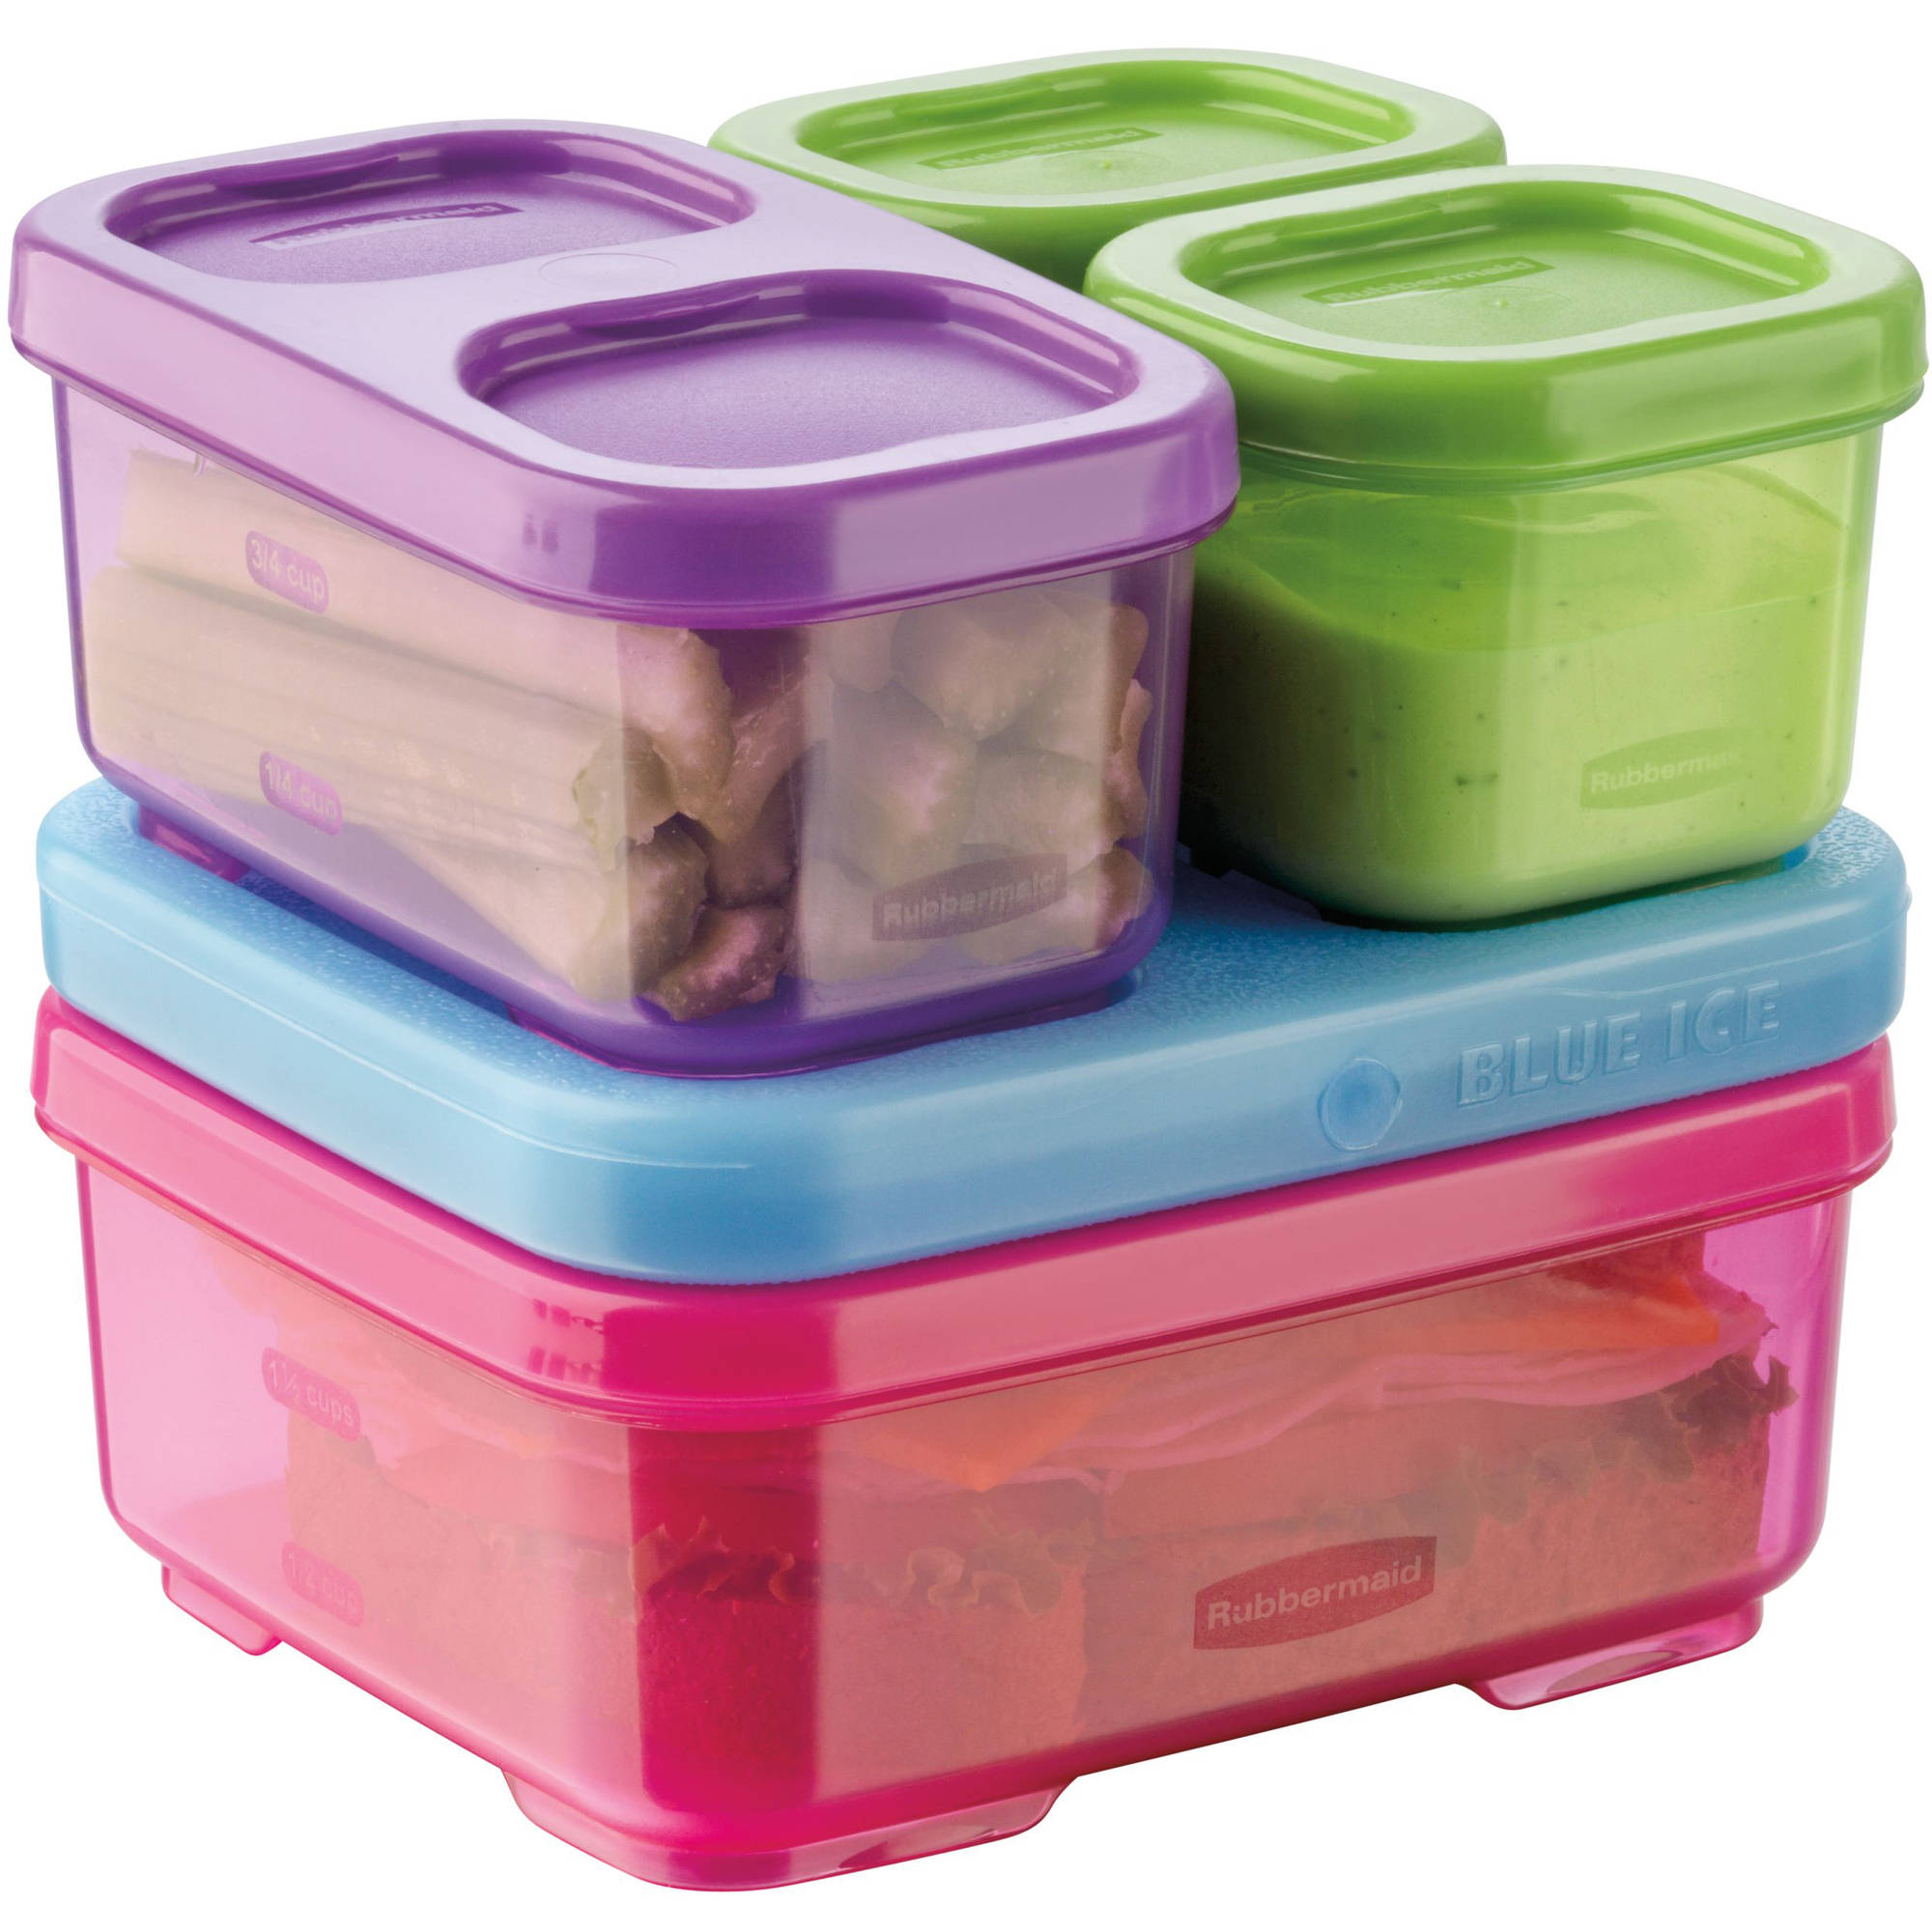 bb37bf456fbb Rubbermaid LunchBlox Kids Multi Color Lunch Kit with ice pack, 1 kit